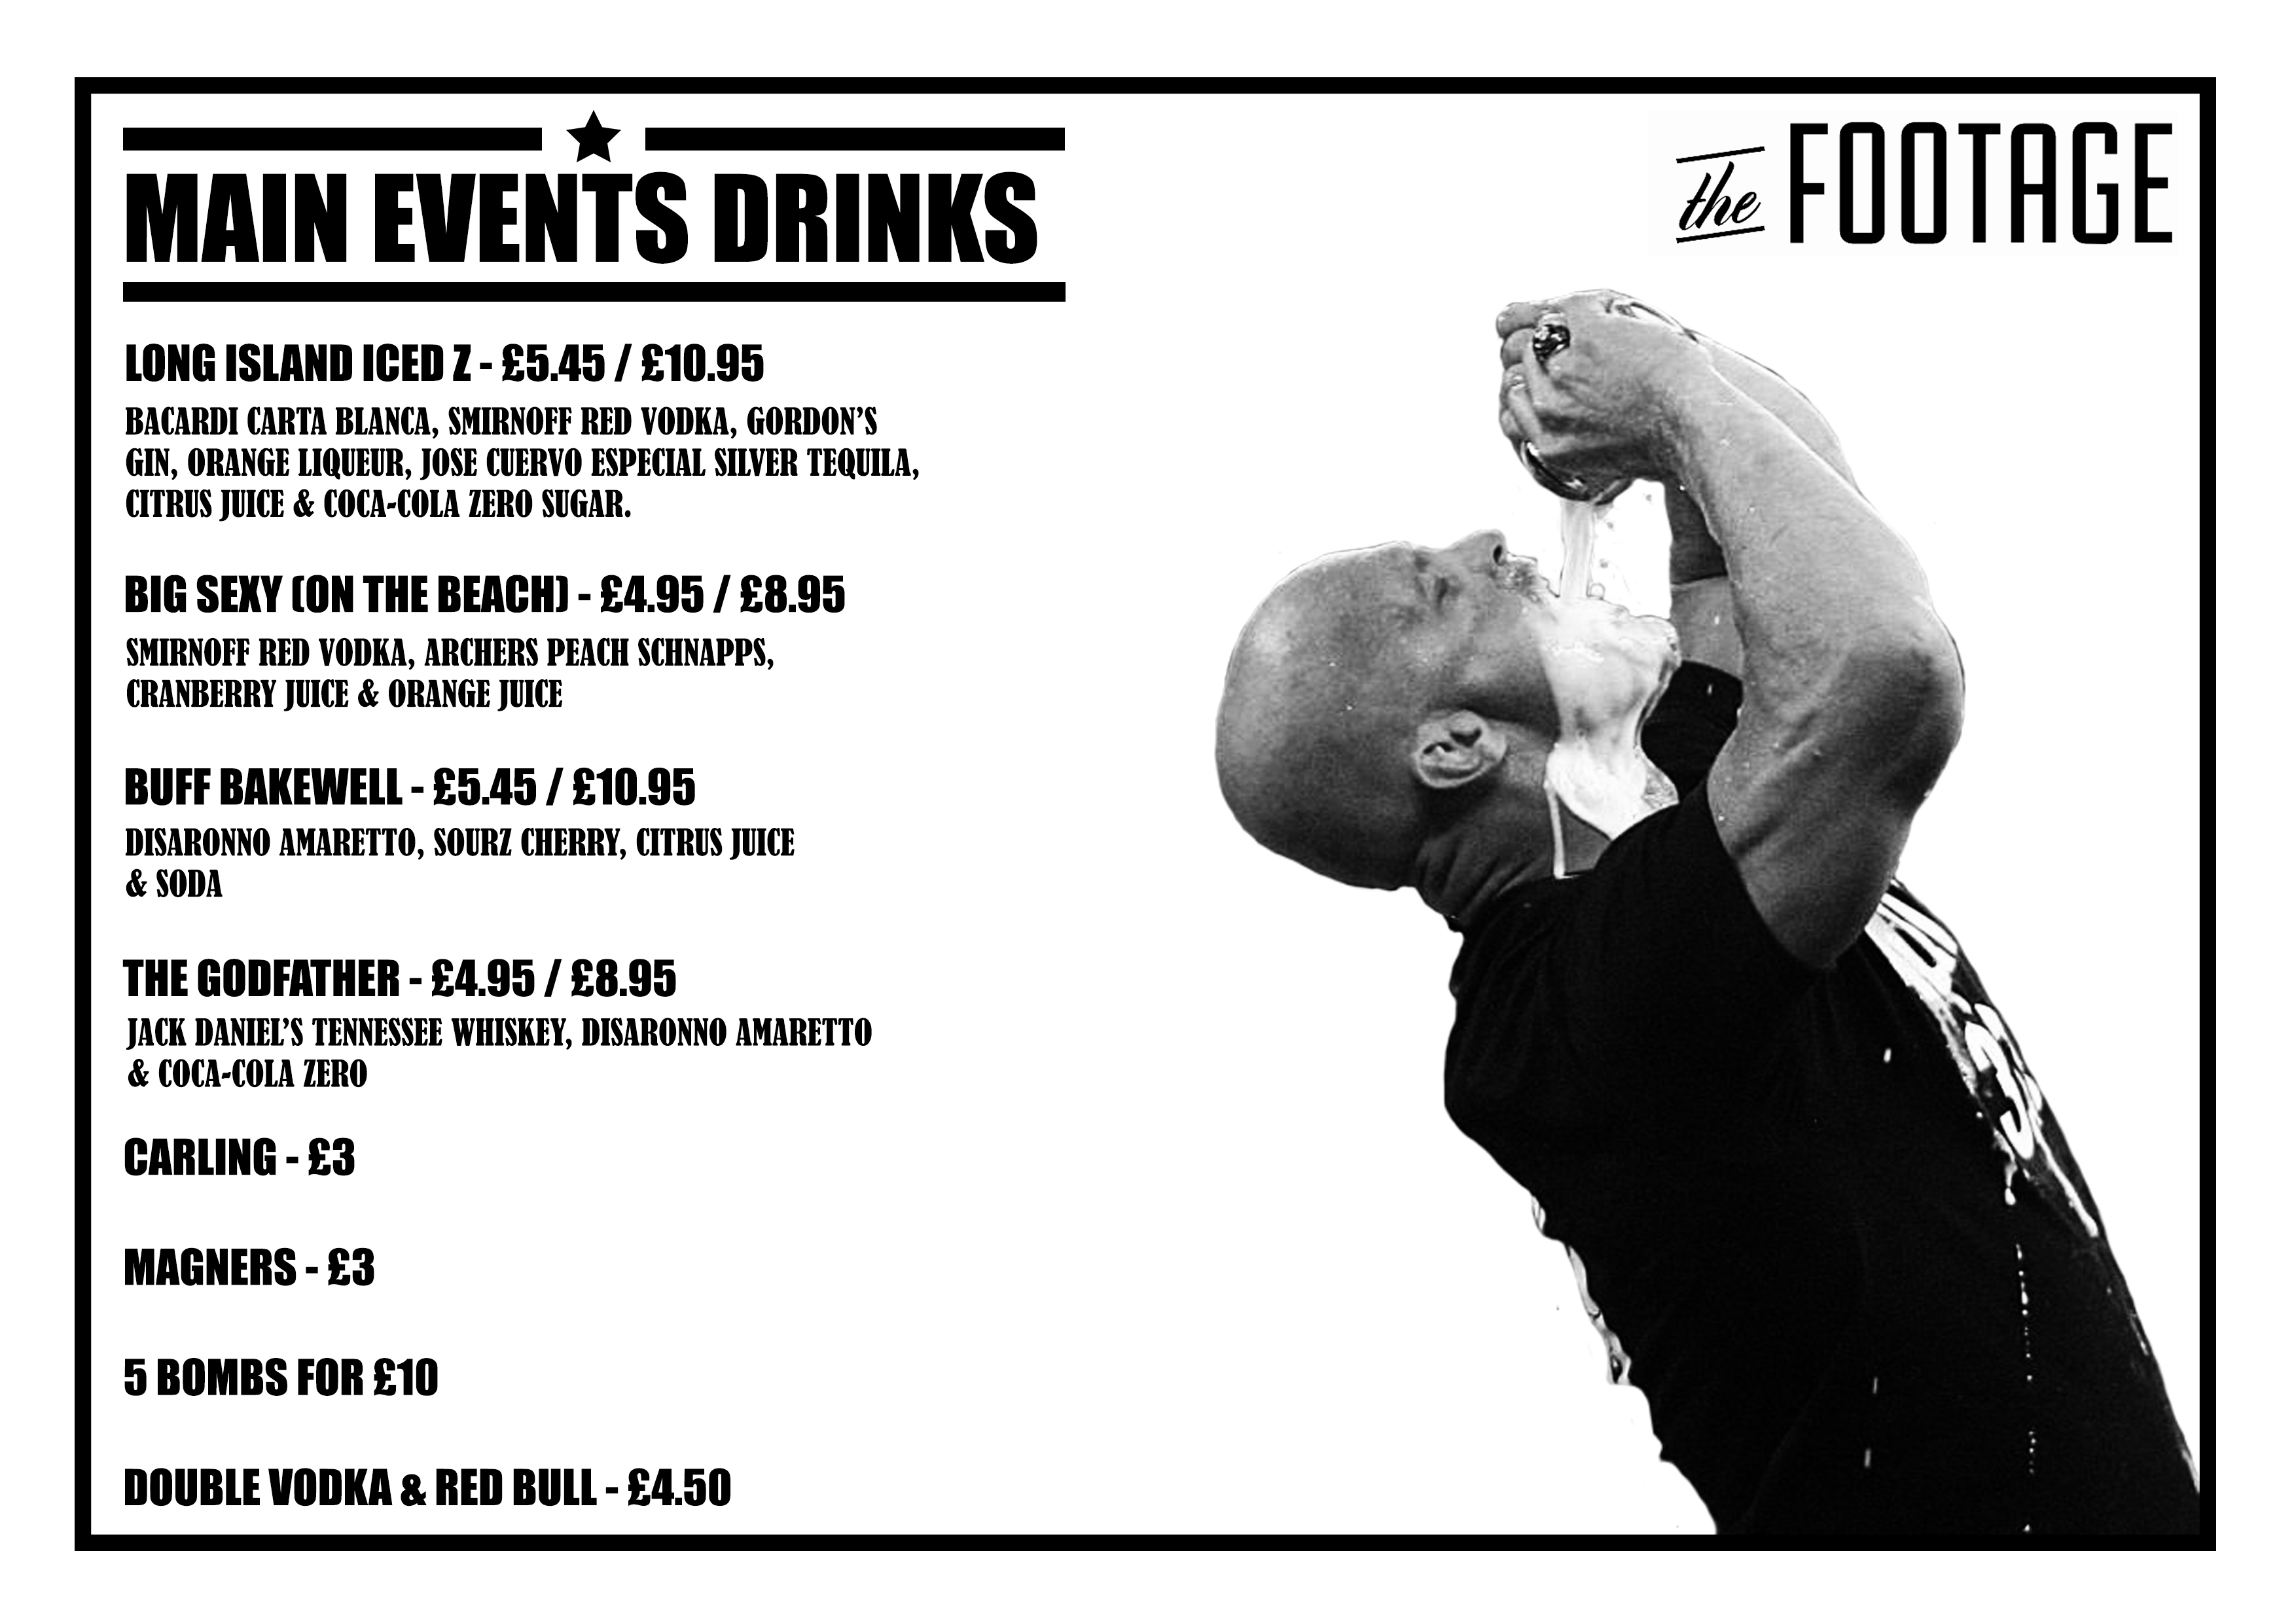 Main Events Wrestling PPV Drinks Deals The Footage Manchester